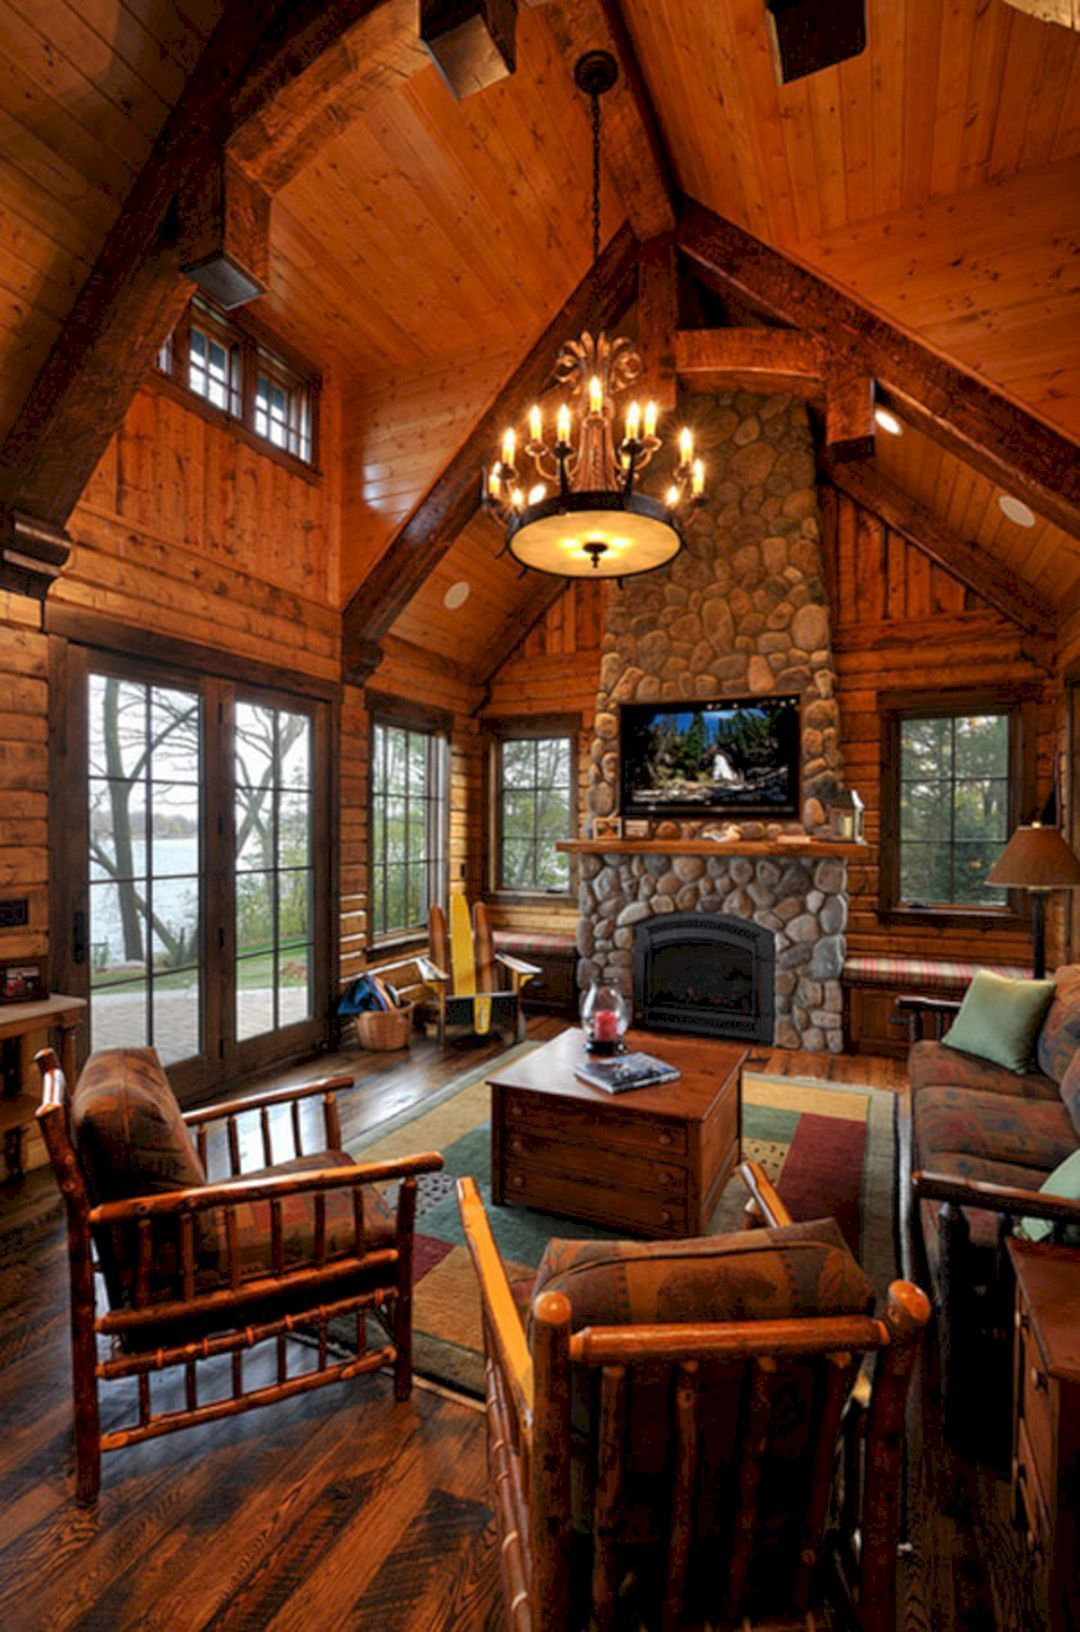 Superb Cozy And Rustic Cabin Style Living Rooms Ideas No 22 Superb Cozy And Rustic Cabin Style Living Rooms Ideas No 22 Design Ideas And Photos Cabin Style Rustic Cabin Rustic House